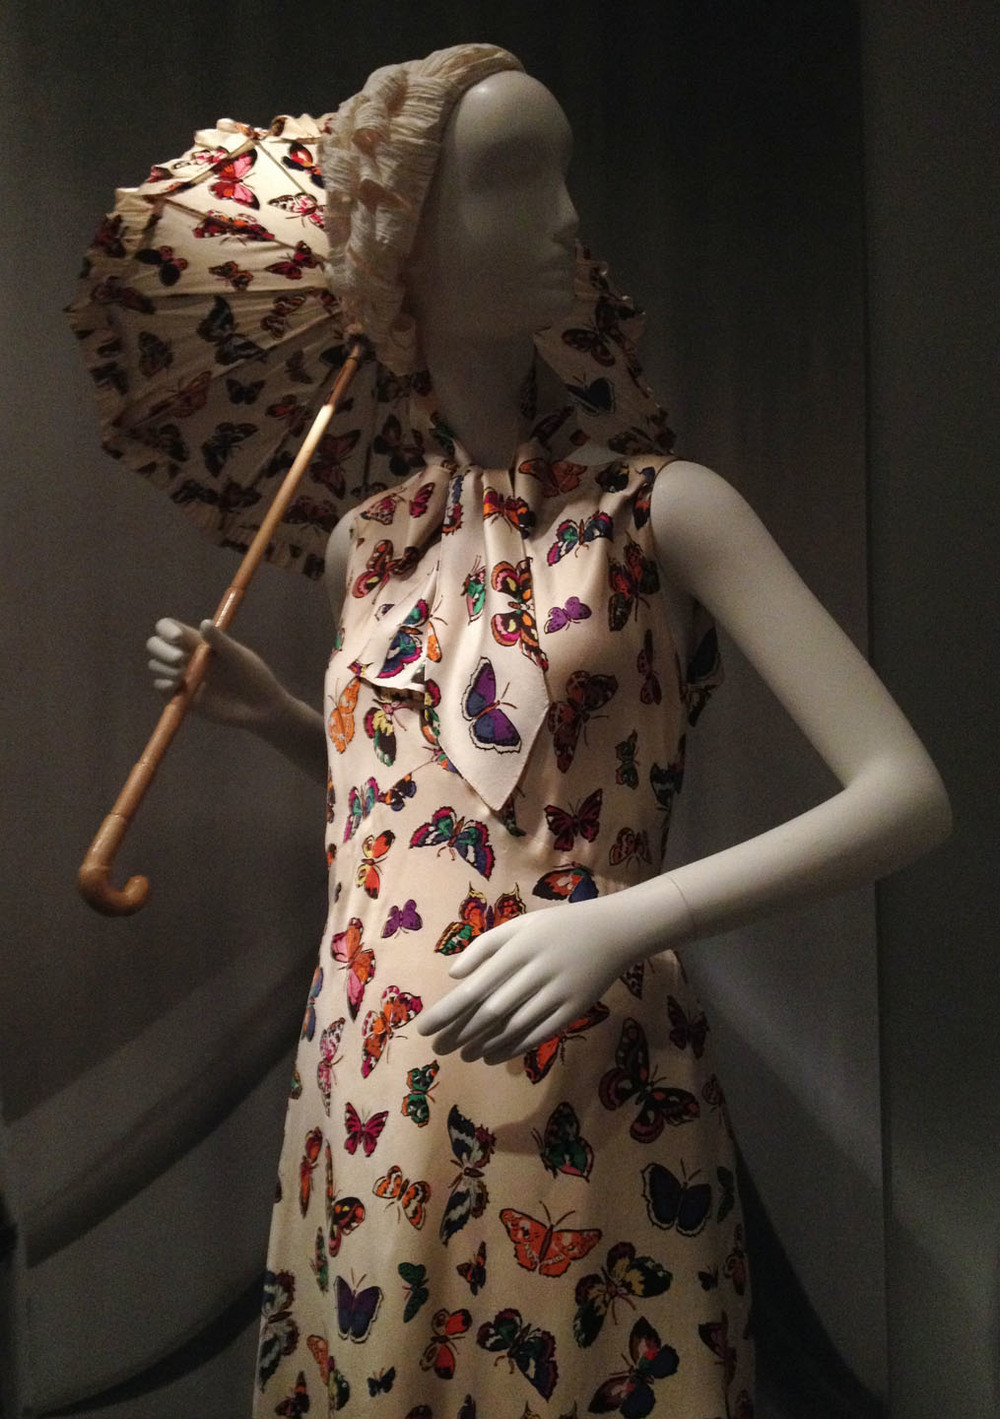 schiaparelli-butterfly-dress-parasol.jpg